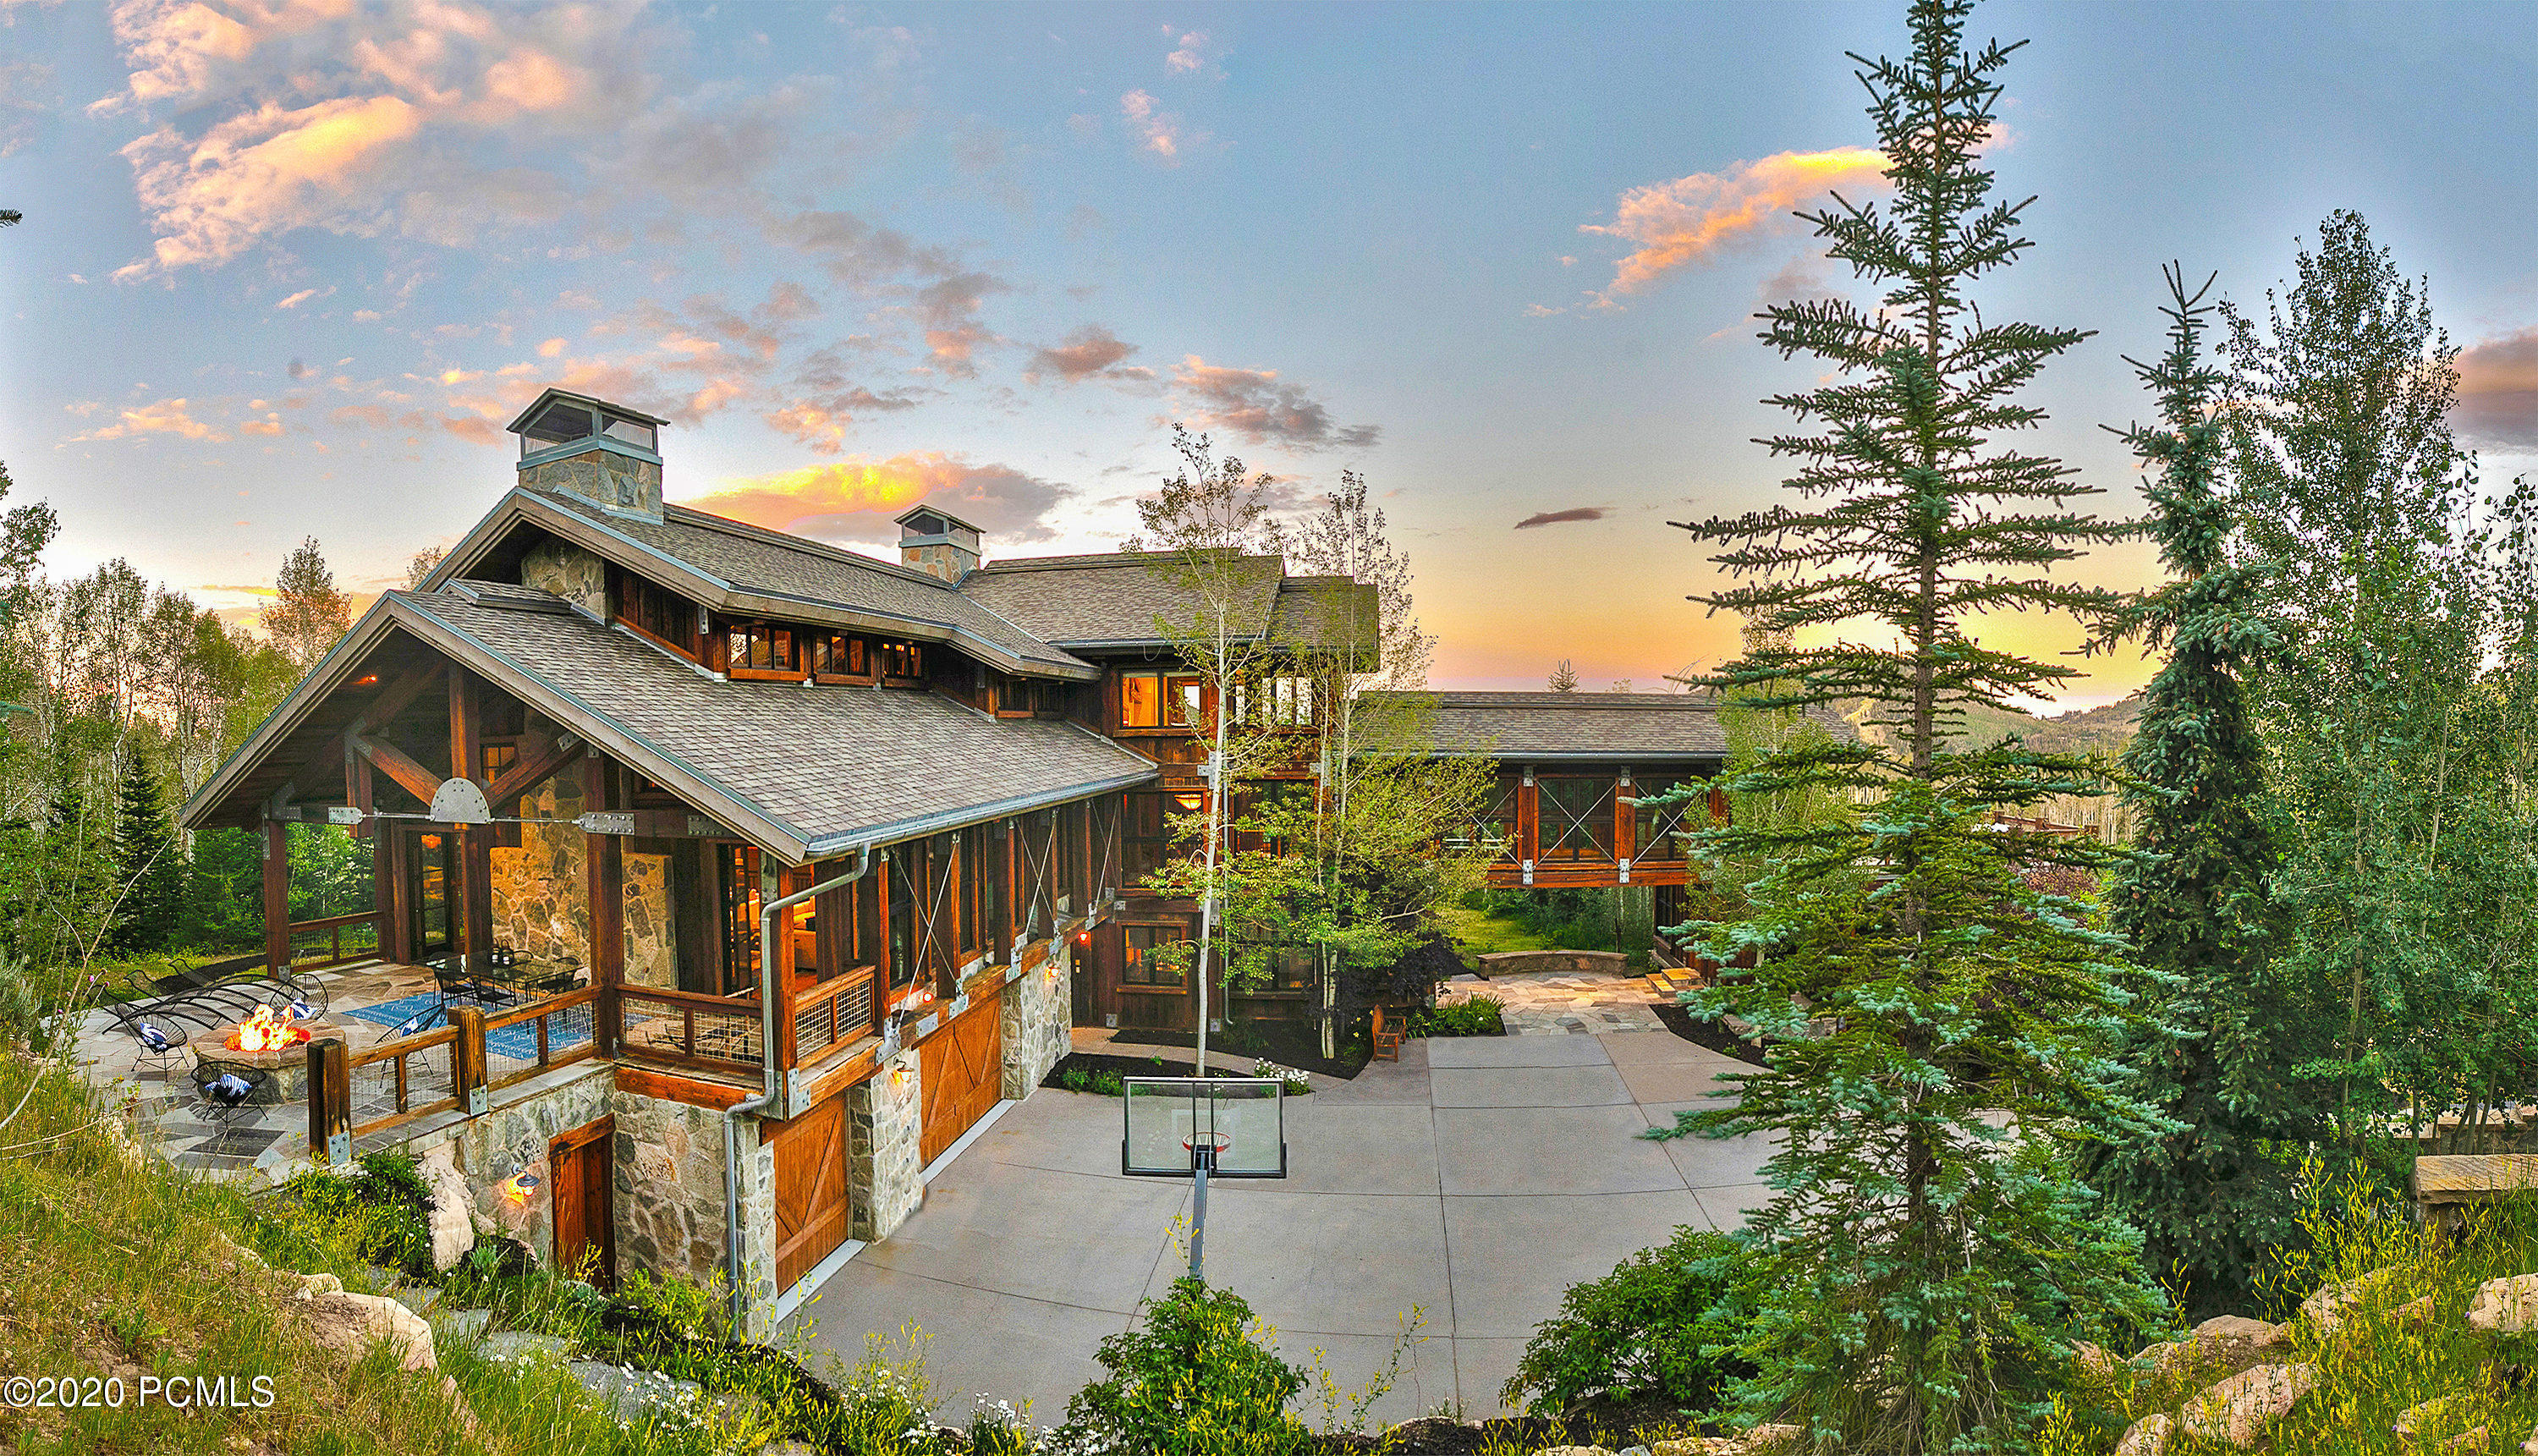 72 White Pine Canyon Road, Park City, Utah 84060, 9 Bedrooms Bedrooms, ,16 BathroomsBathrooms,Single Family,For Sale,White Pine Canyon,12004919